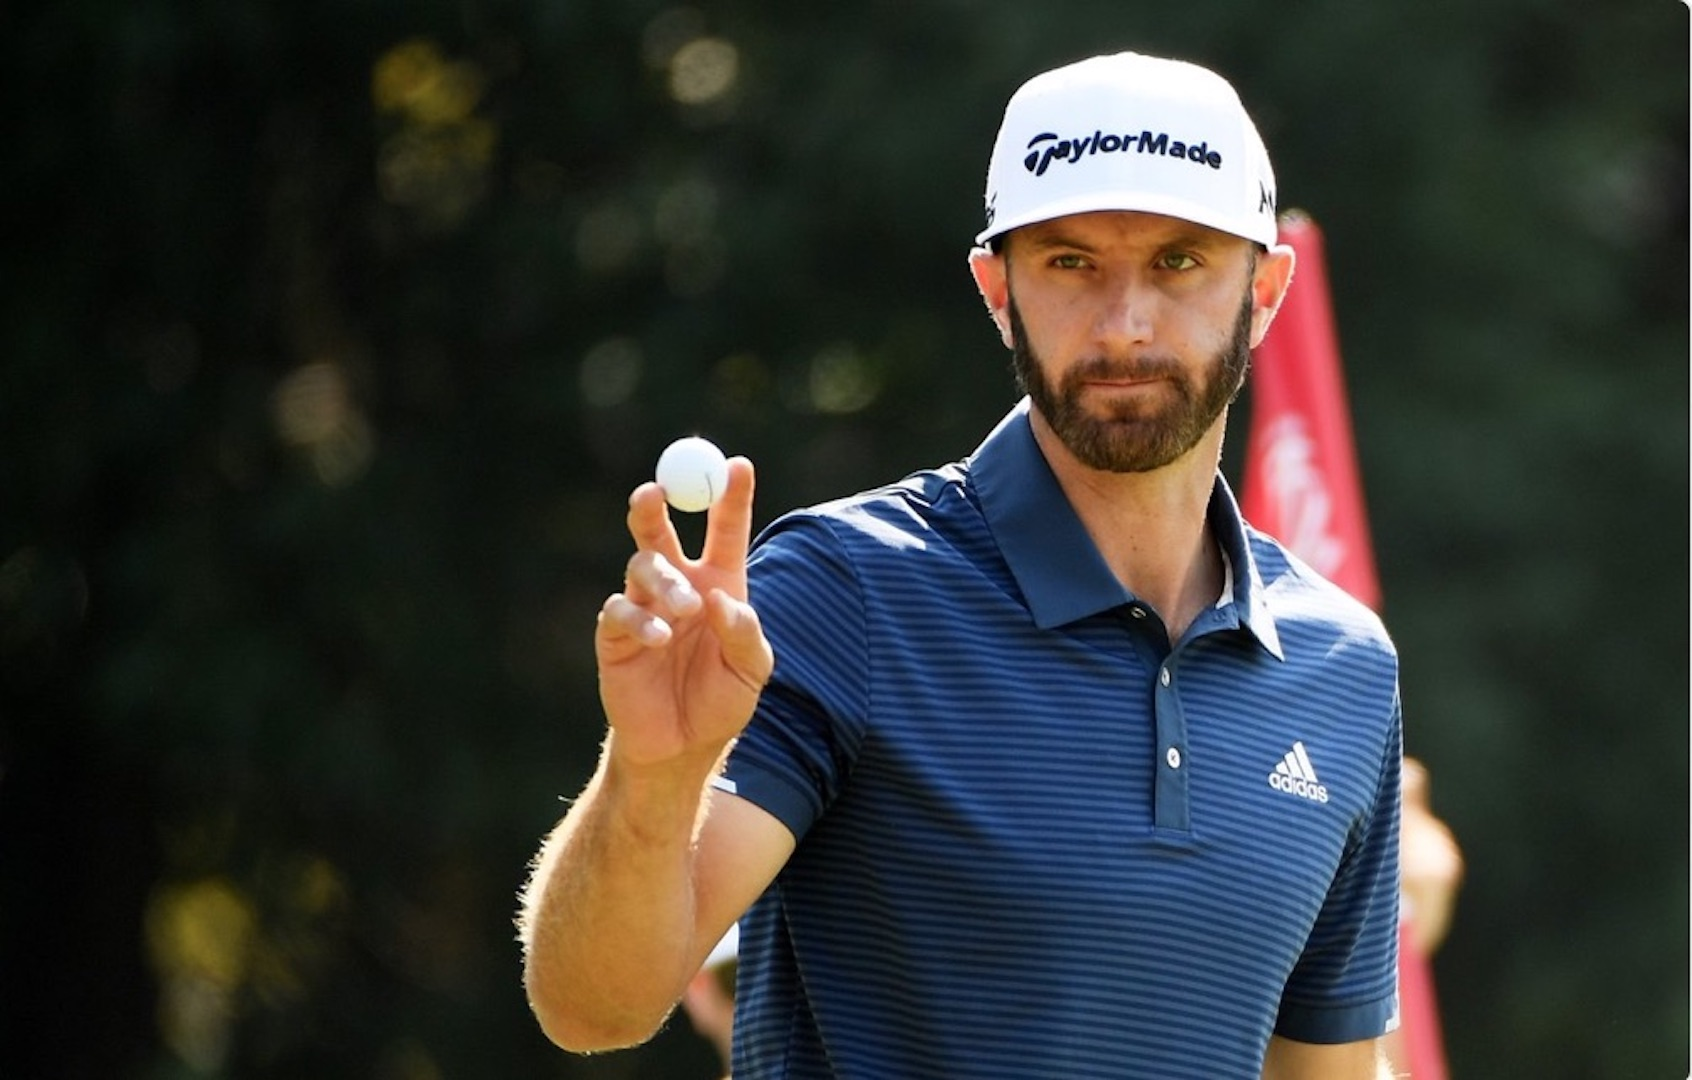 Dustin Johnson in charge at the HSBC Champions